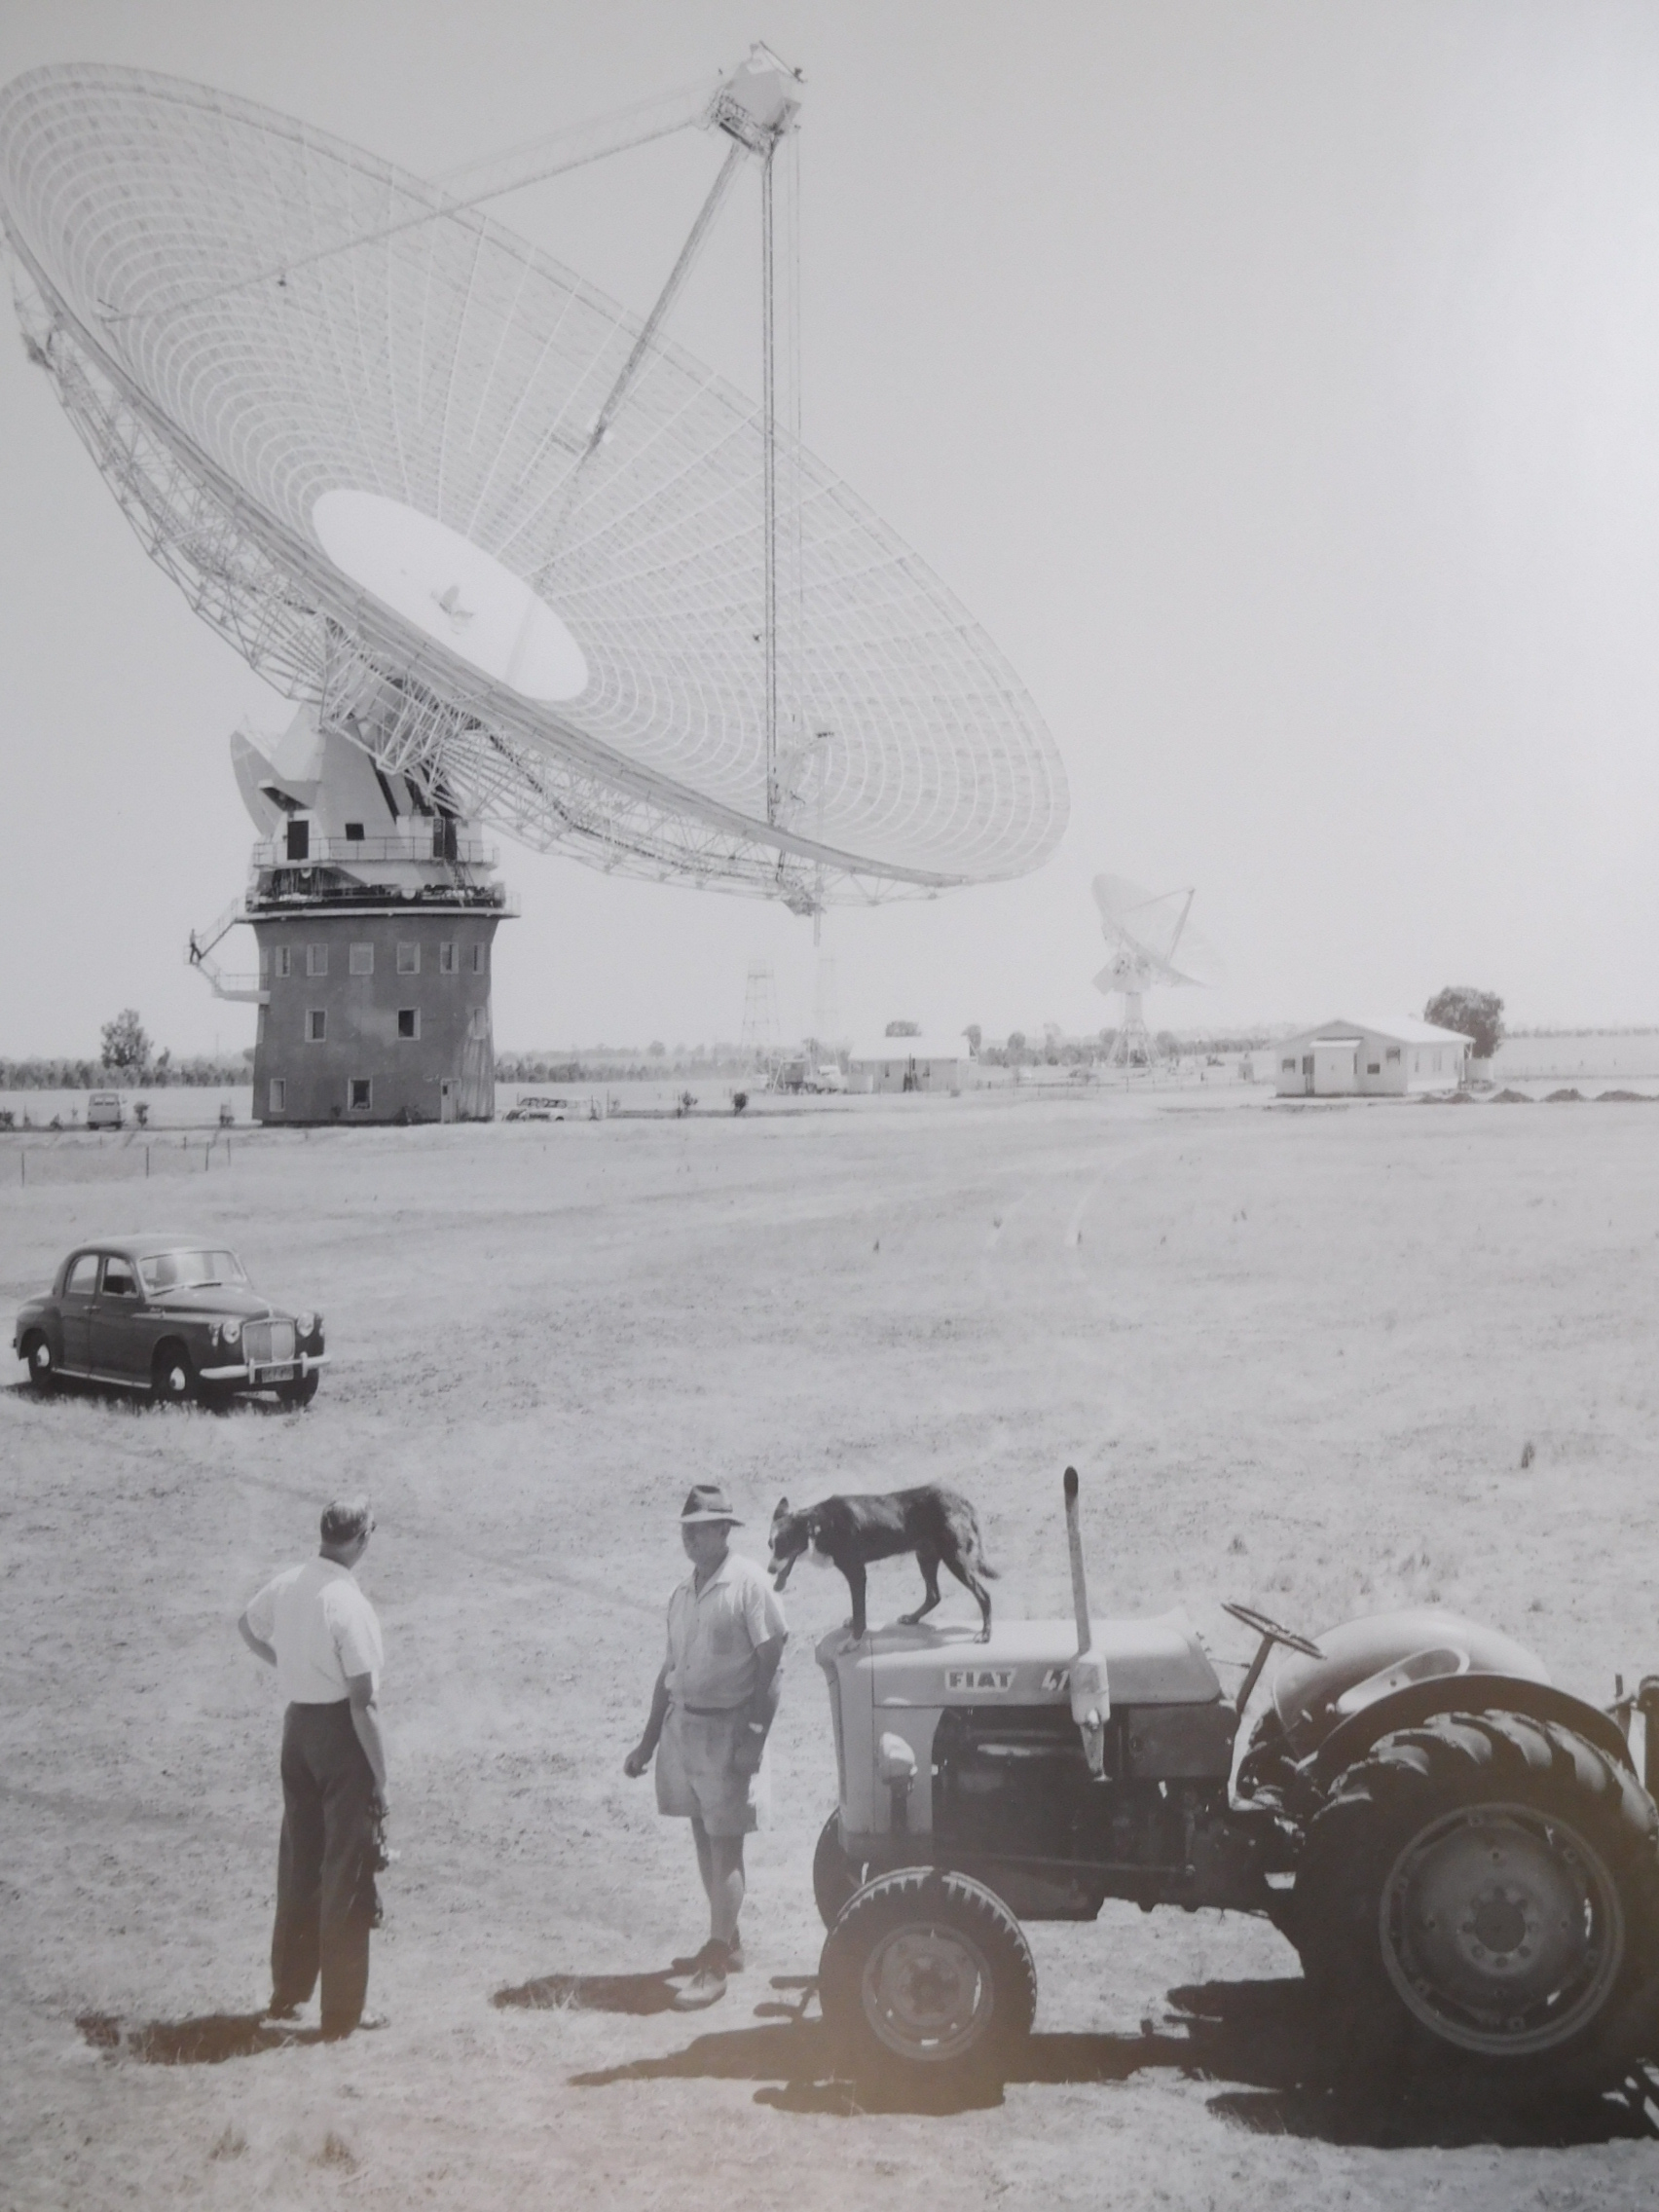 I love this photo, especially the old car in the foreground and the kelpie sitting up on the tractor.